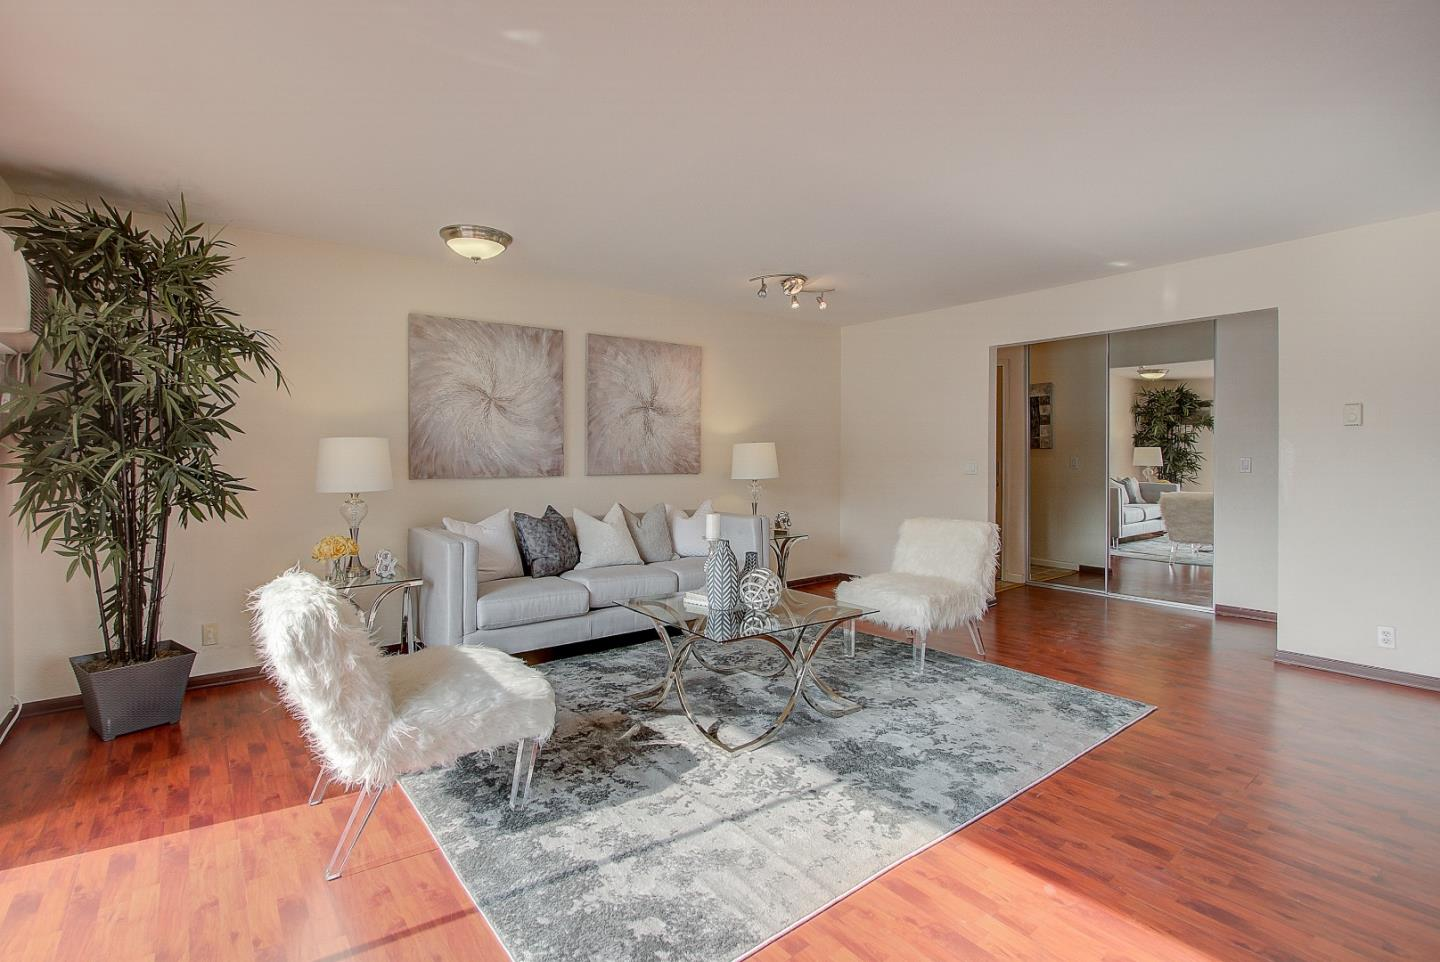 300 UNION AVE 24, CAMPBELL, CA 95008